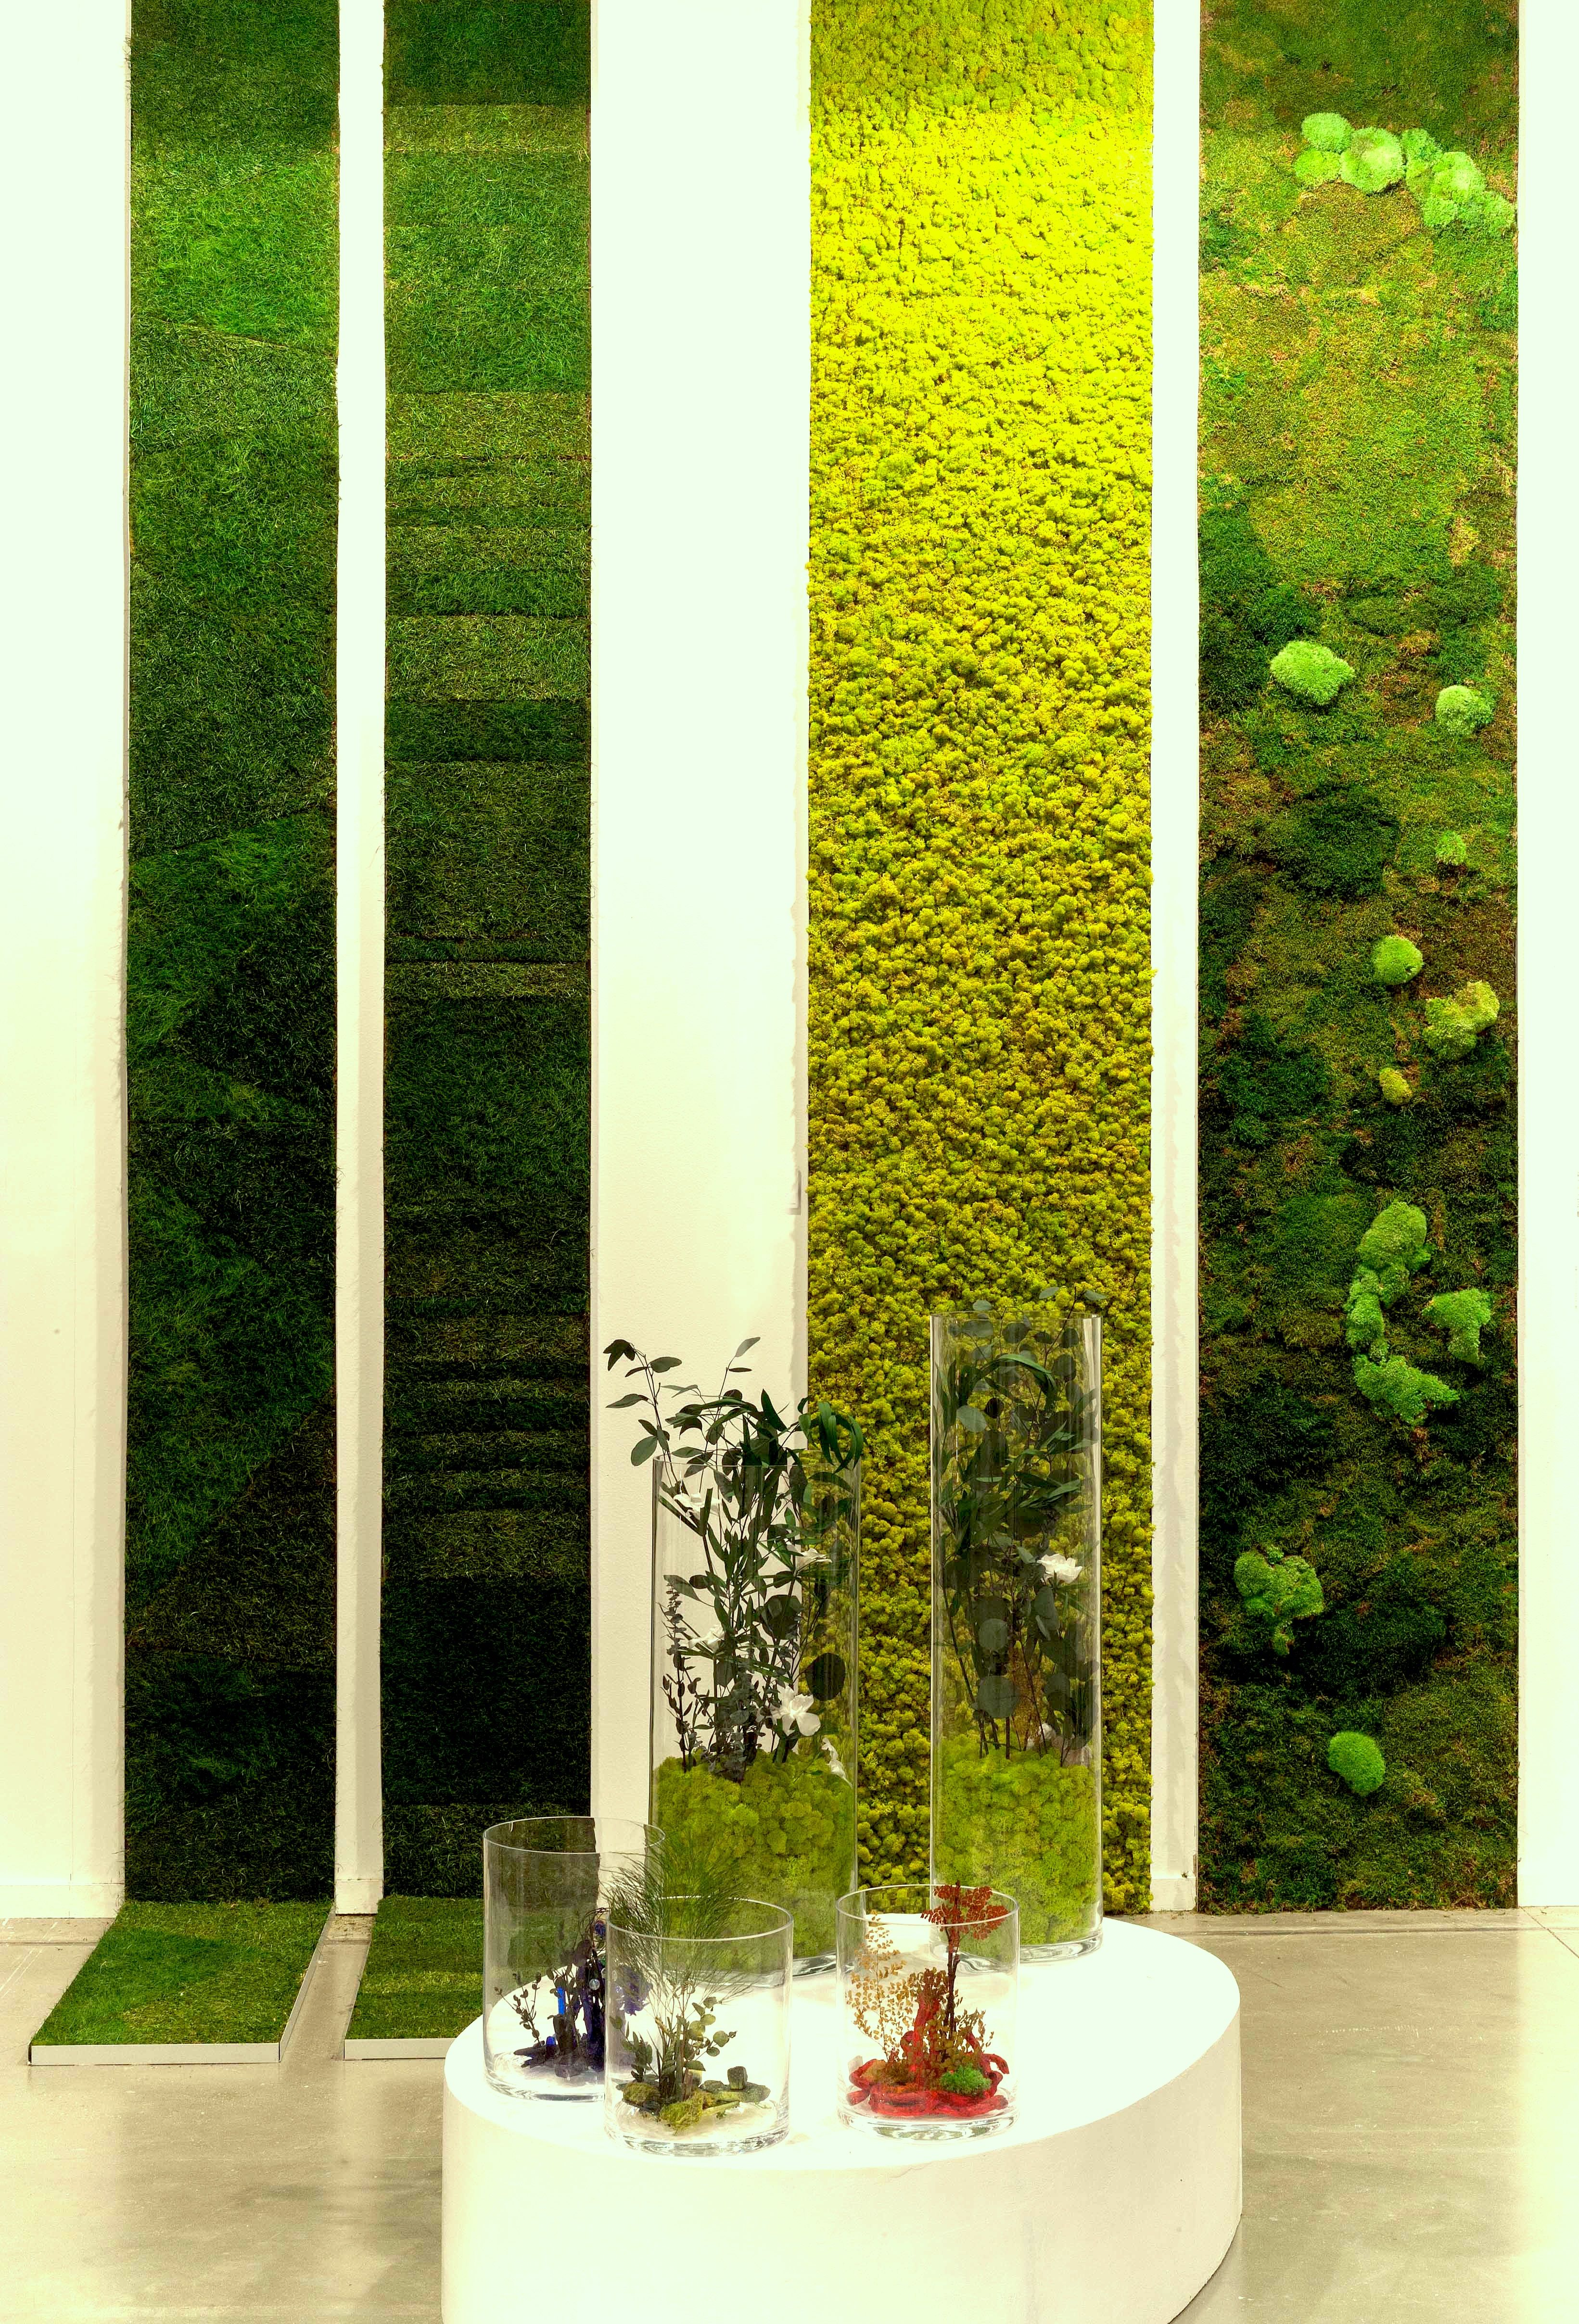 JARDINES VERTICALES | Moss art, Greenery pantone and Living walls